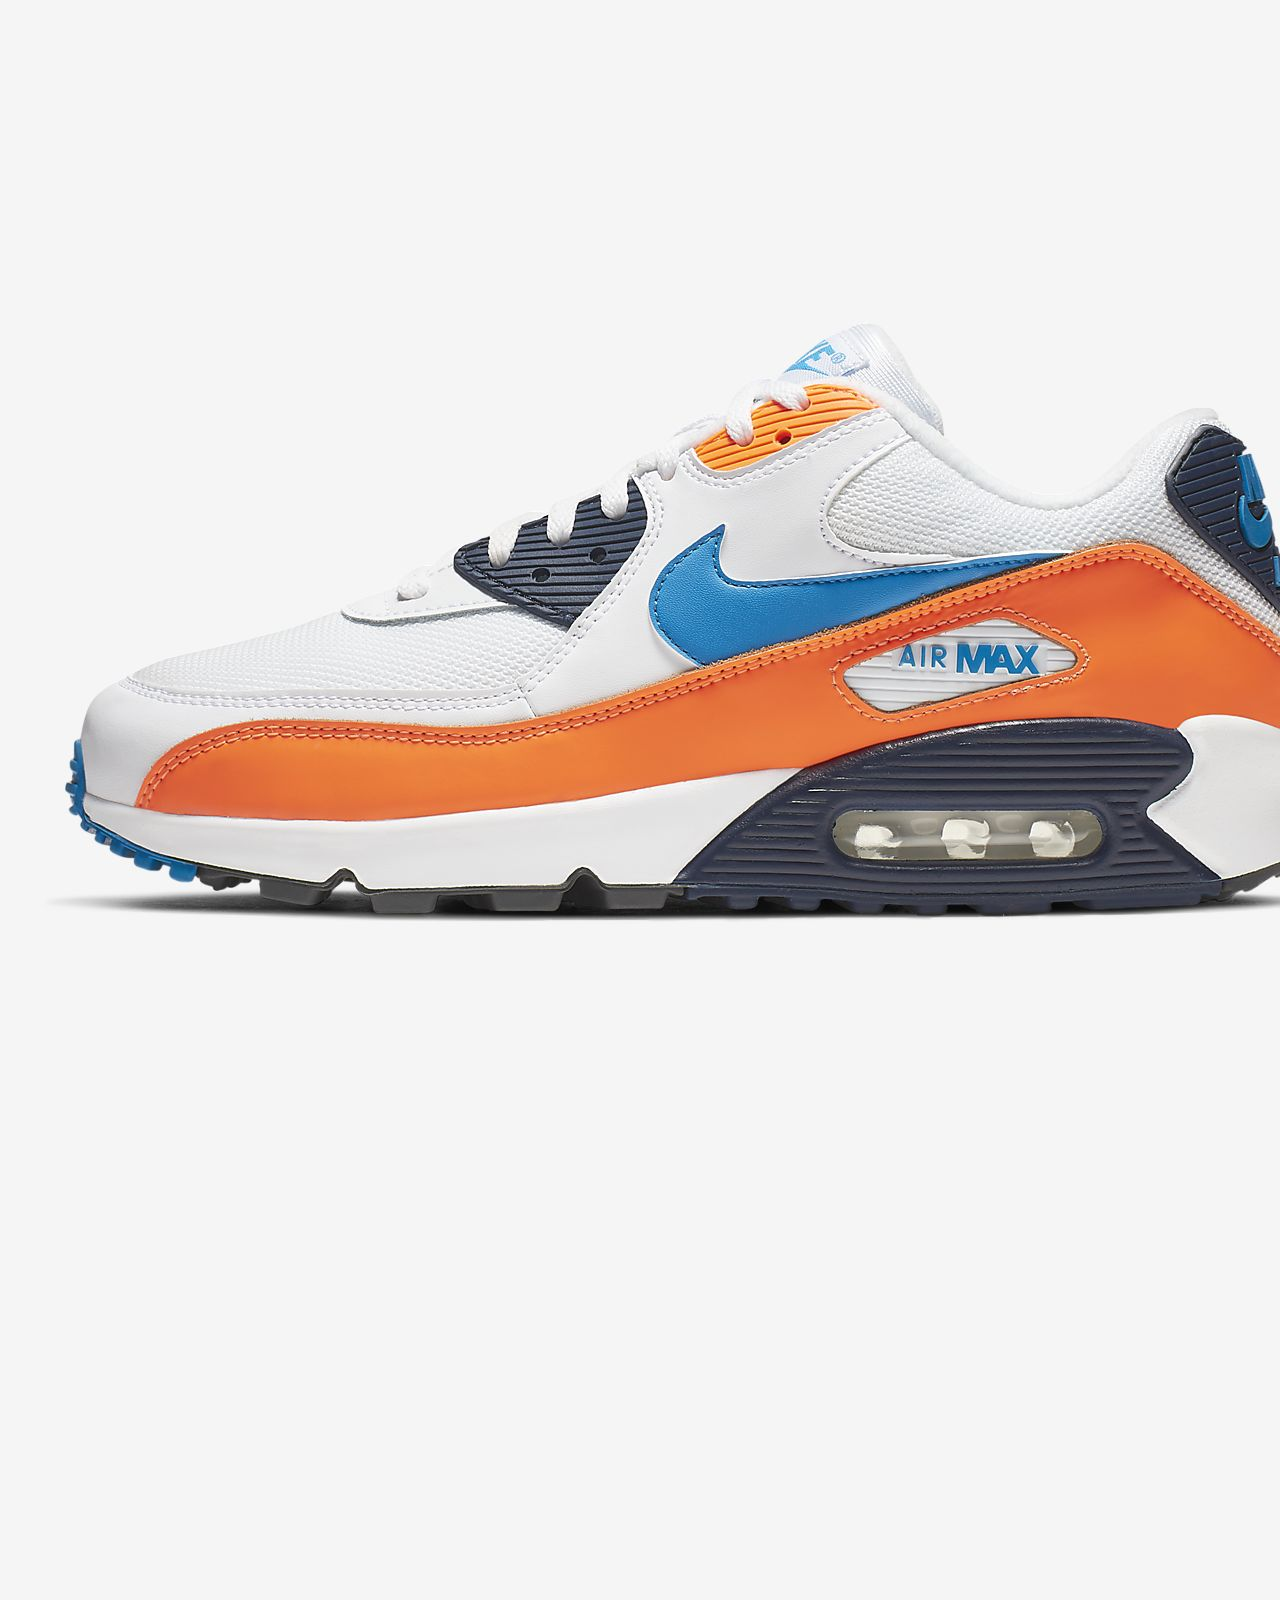 separation shoes f0a4b e9ca3 ... Nike Air Max 90 Essential Men s Shoe